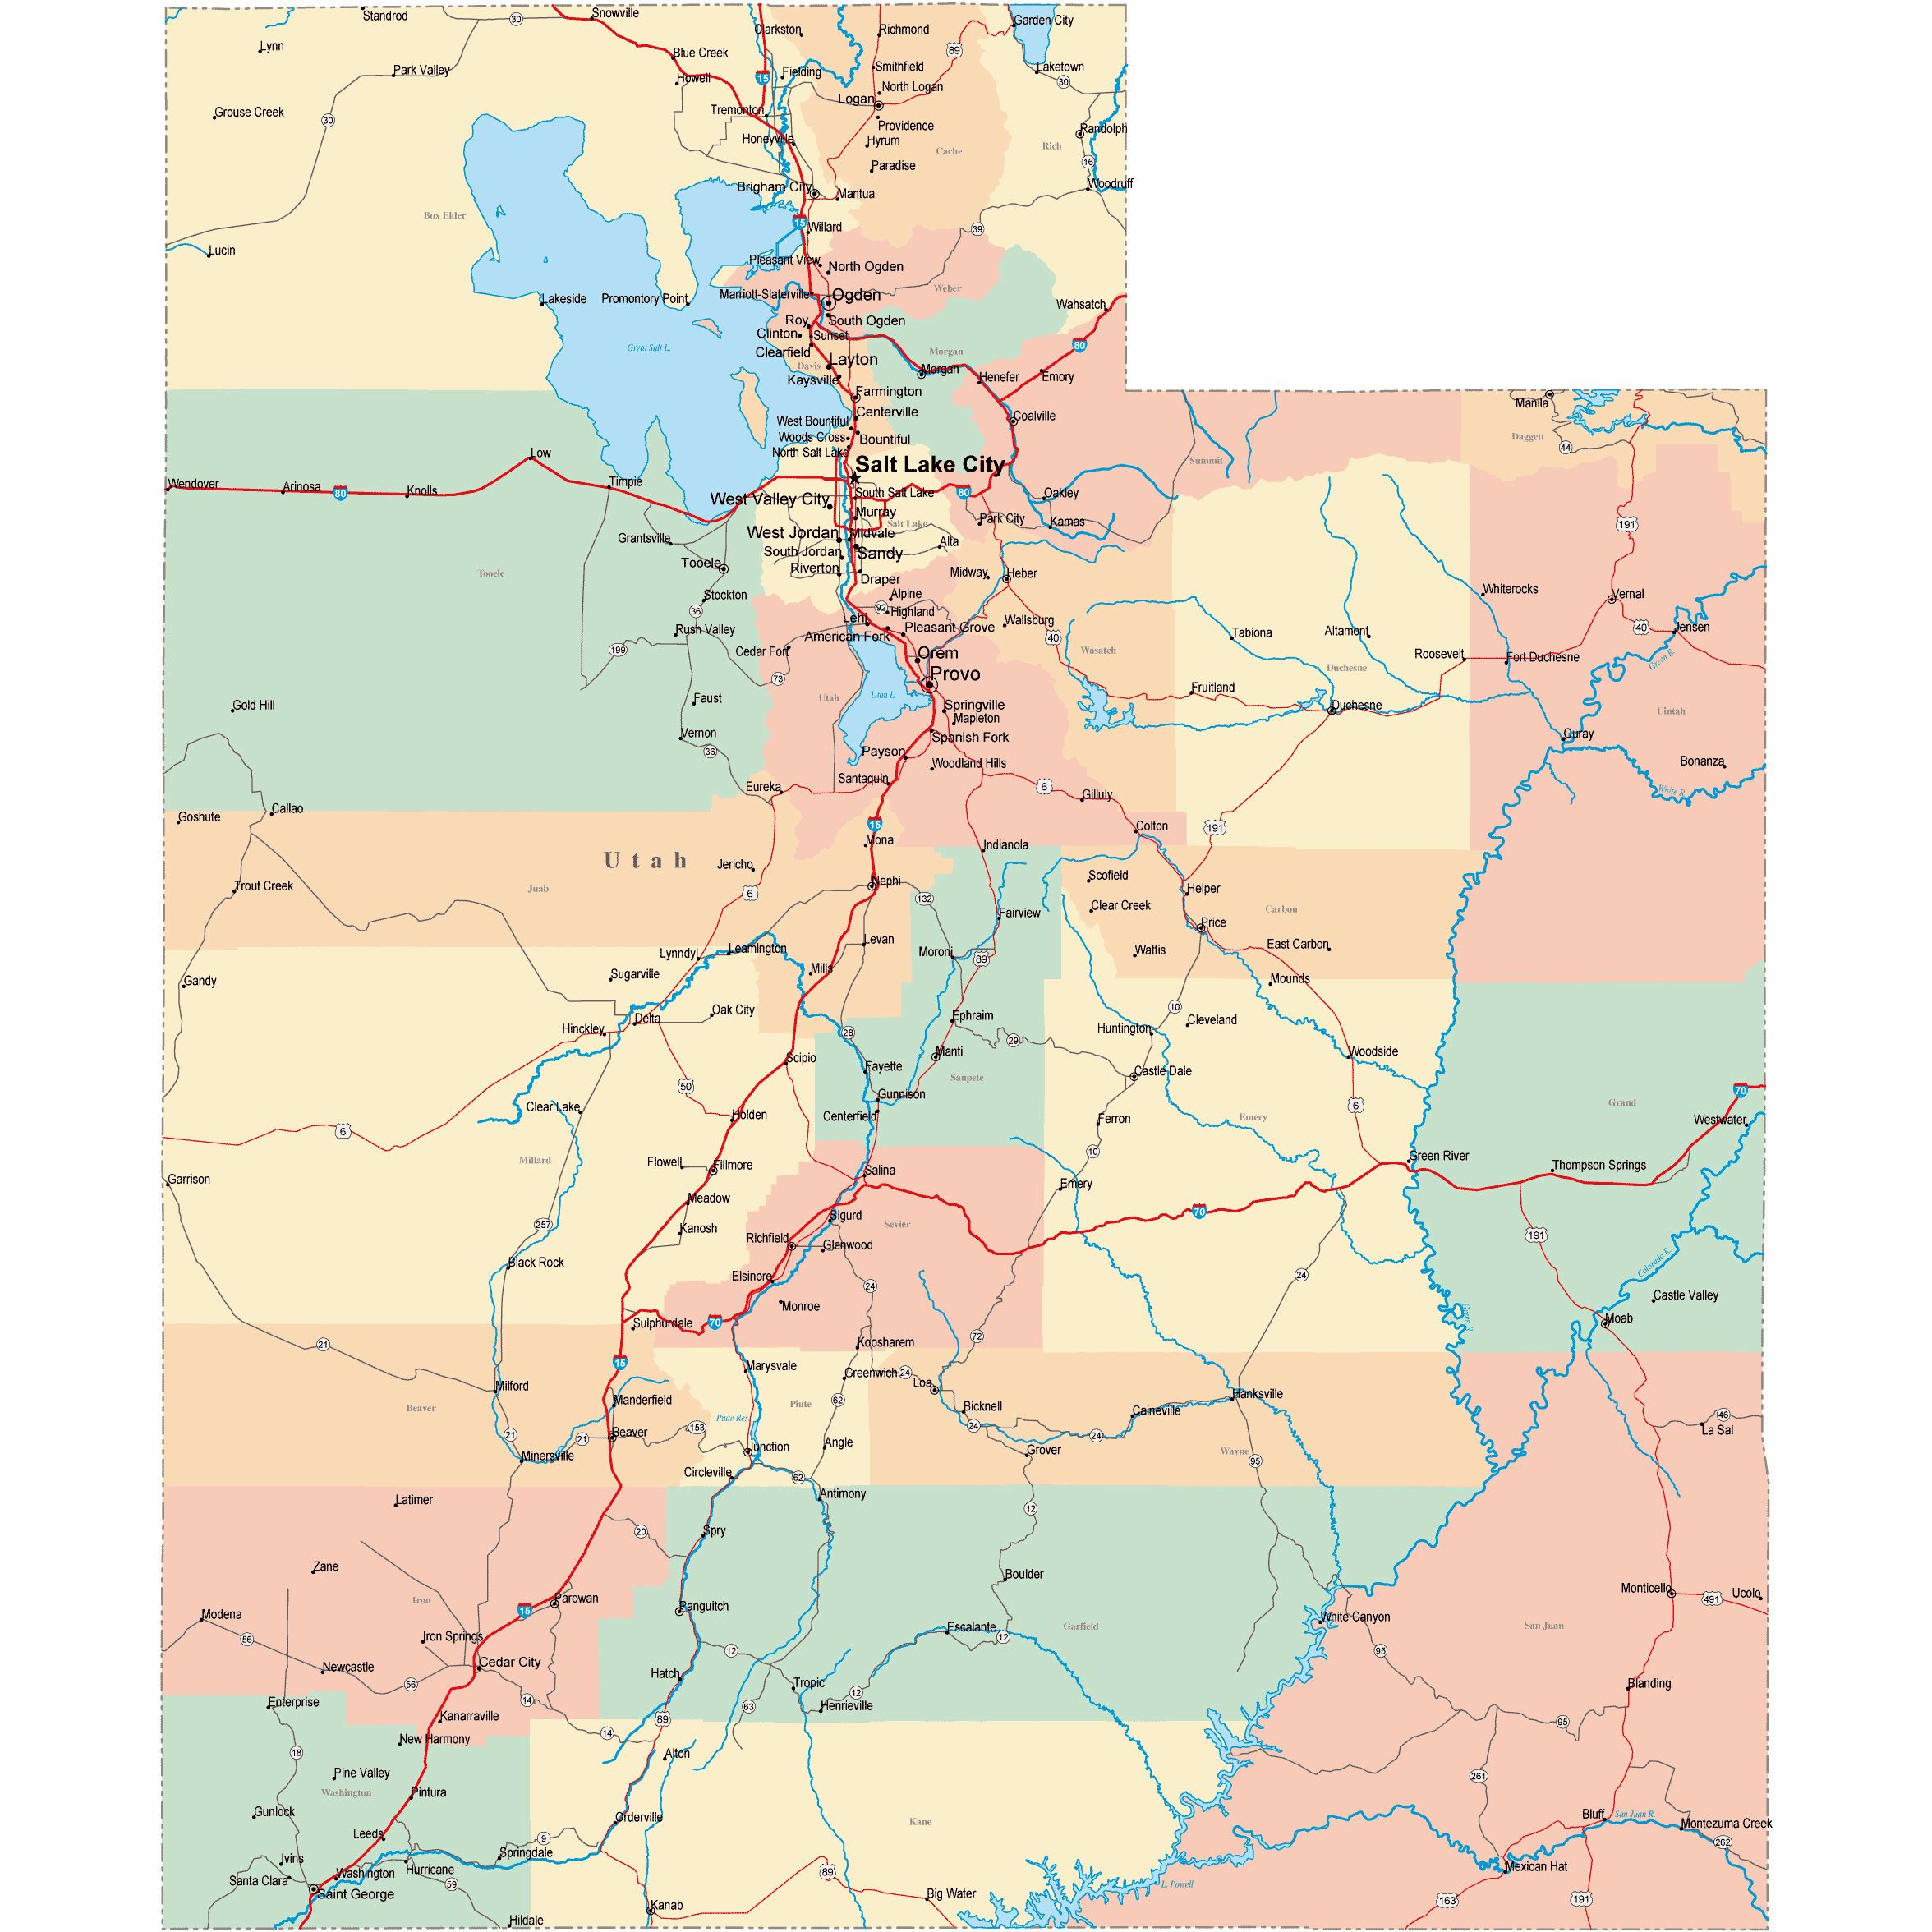 Large Utah Maps For Free Download And Print High